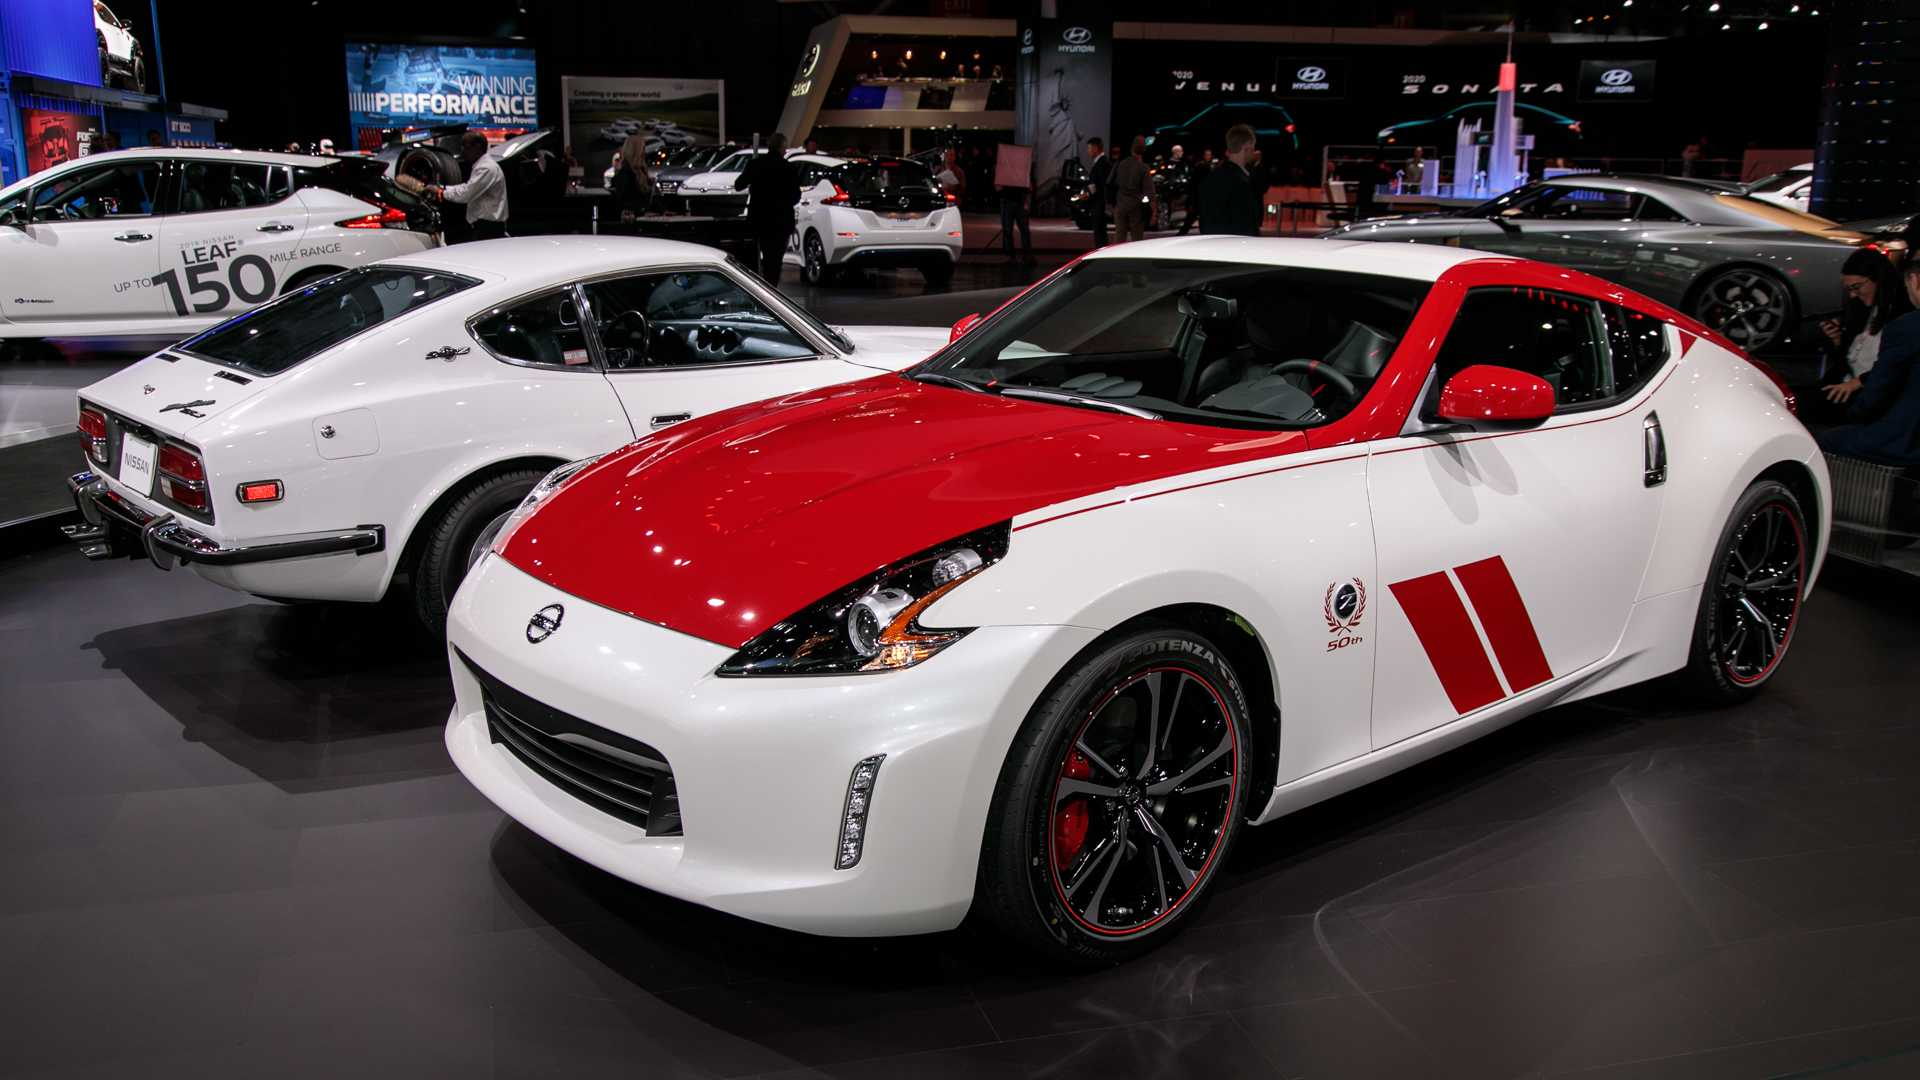 35 The Best 2020 Nissan Z Car New Model And Performance